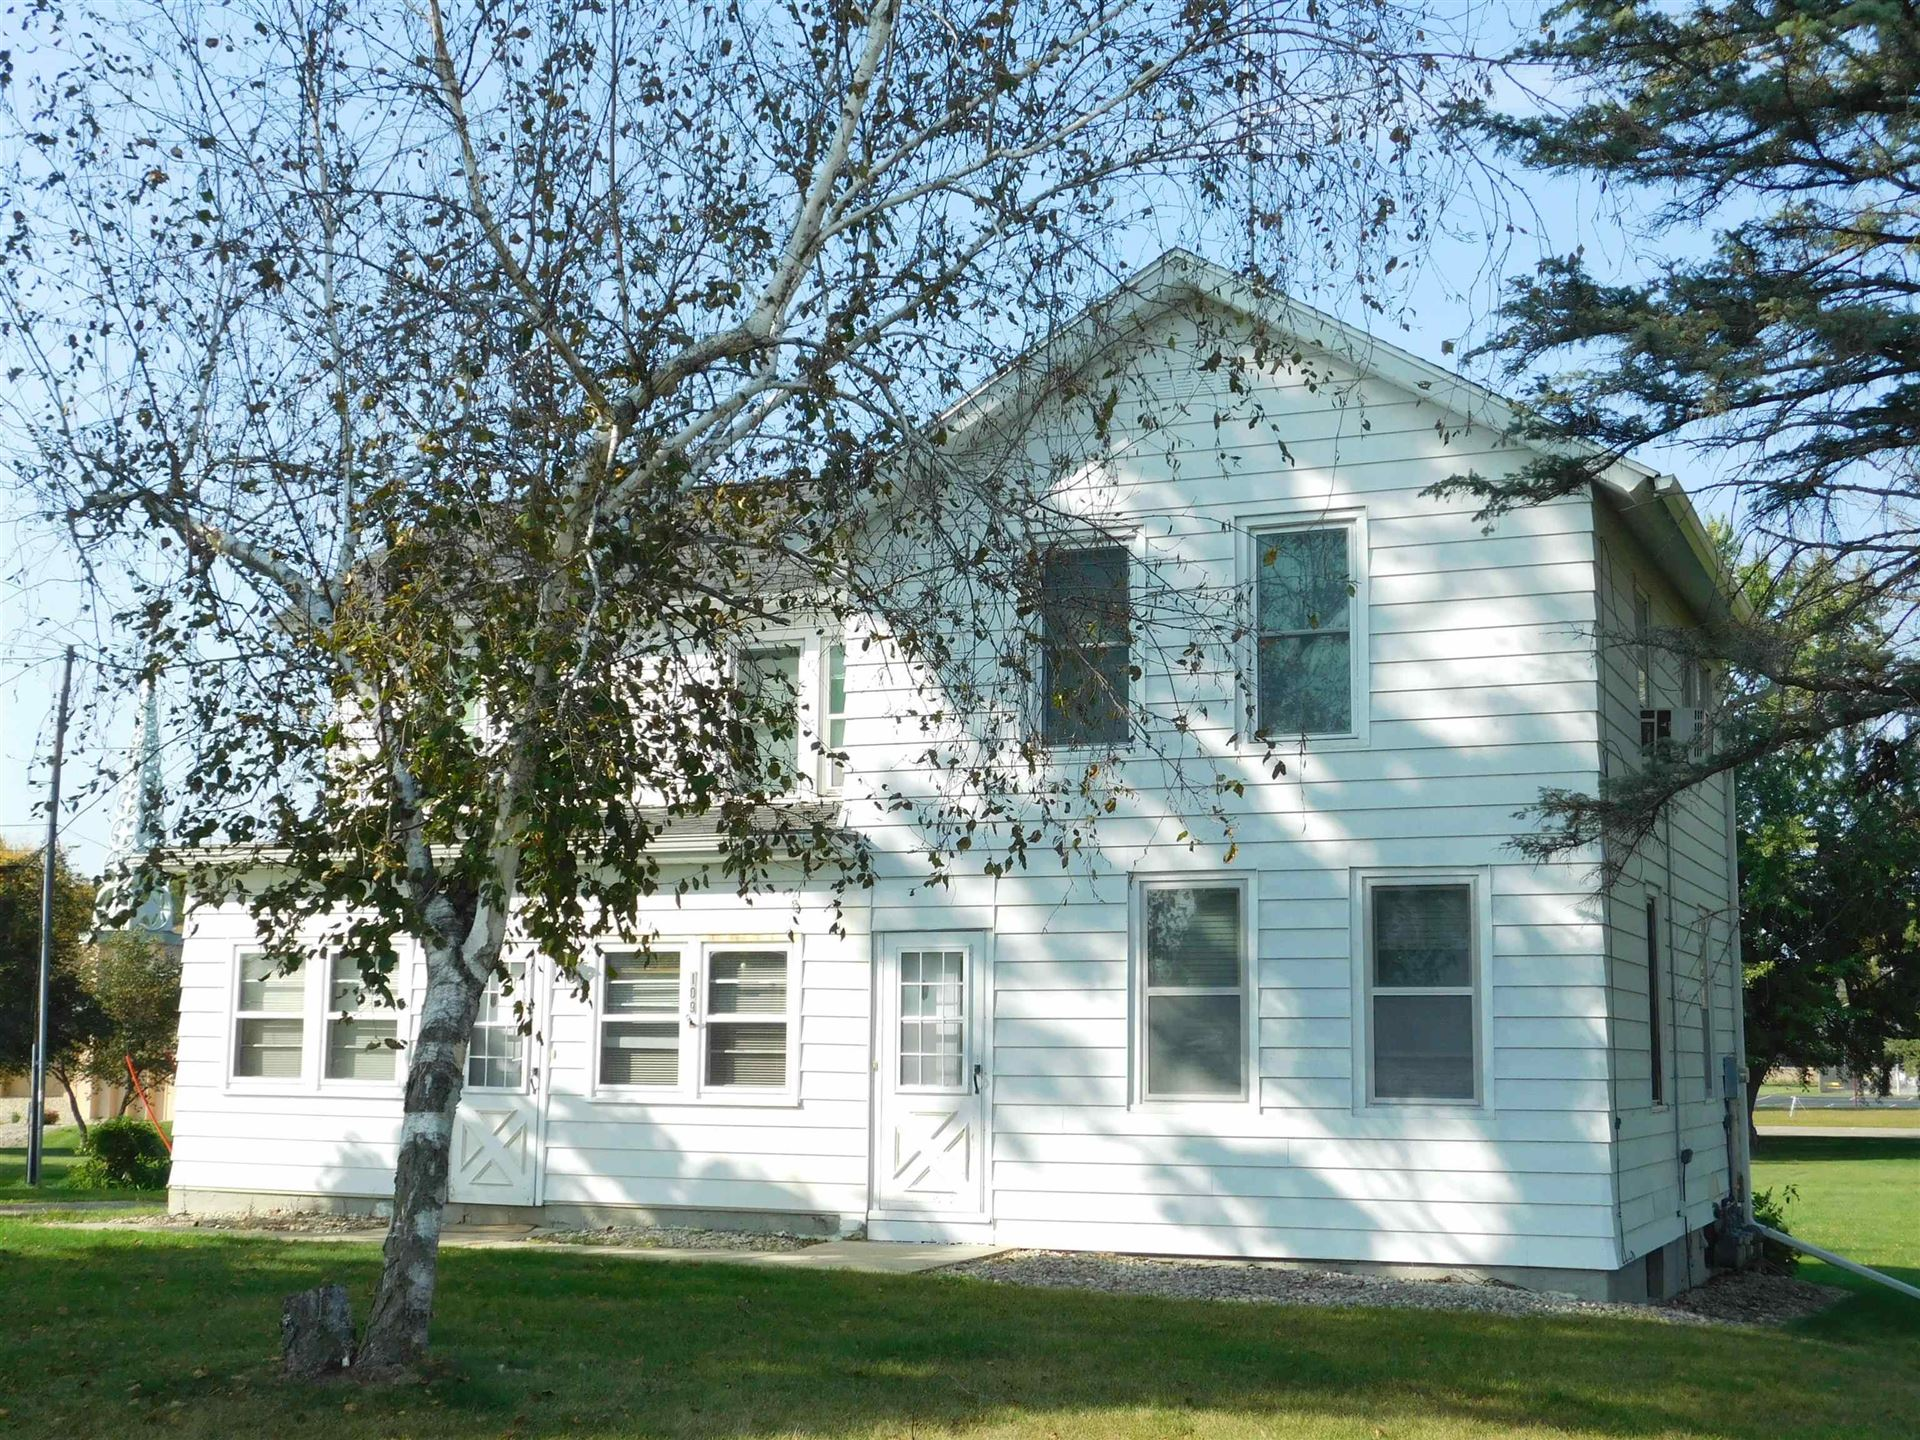 109 W Daley St, Spring Green, WI 53588 - #: 1921025